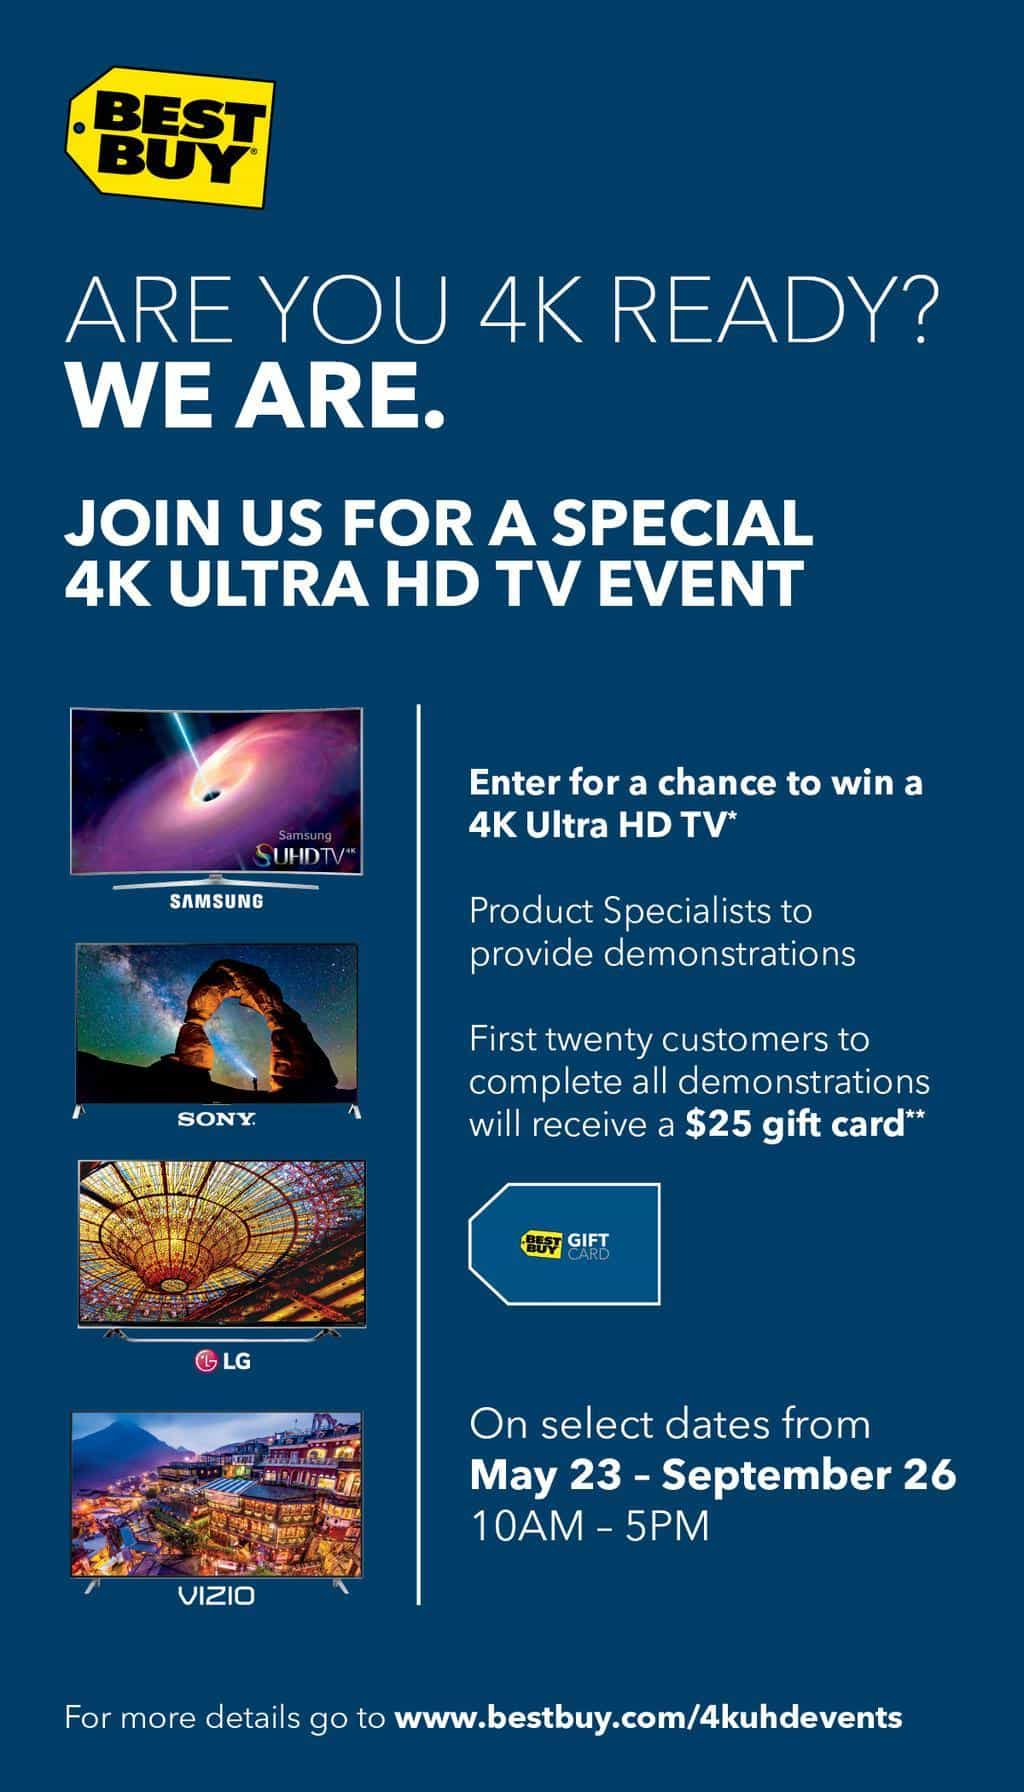 4K Ultra HD In Store Events Happening at Best Buy #UHDatBestBuy @BestBuy #ad